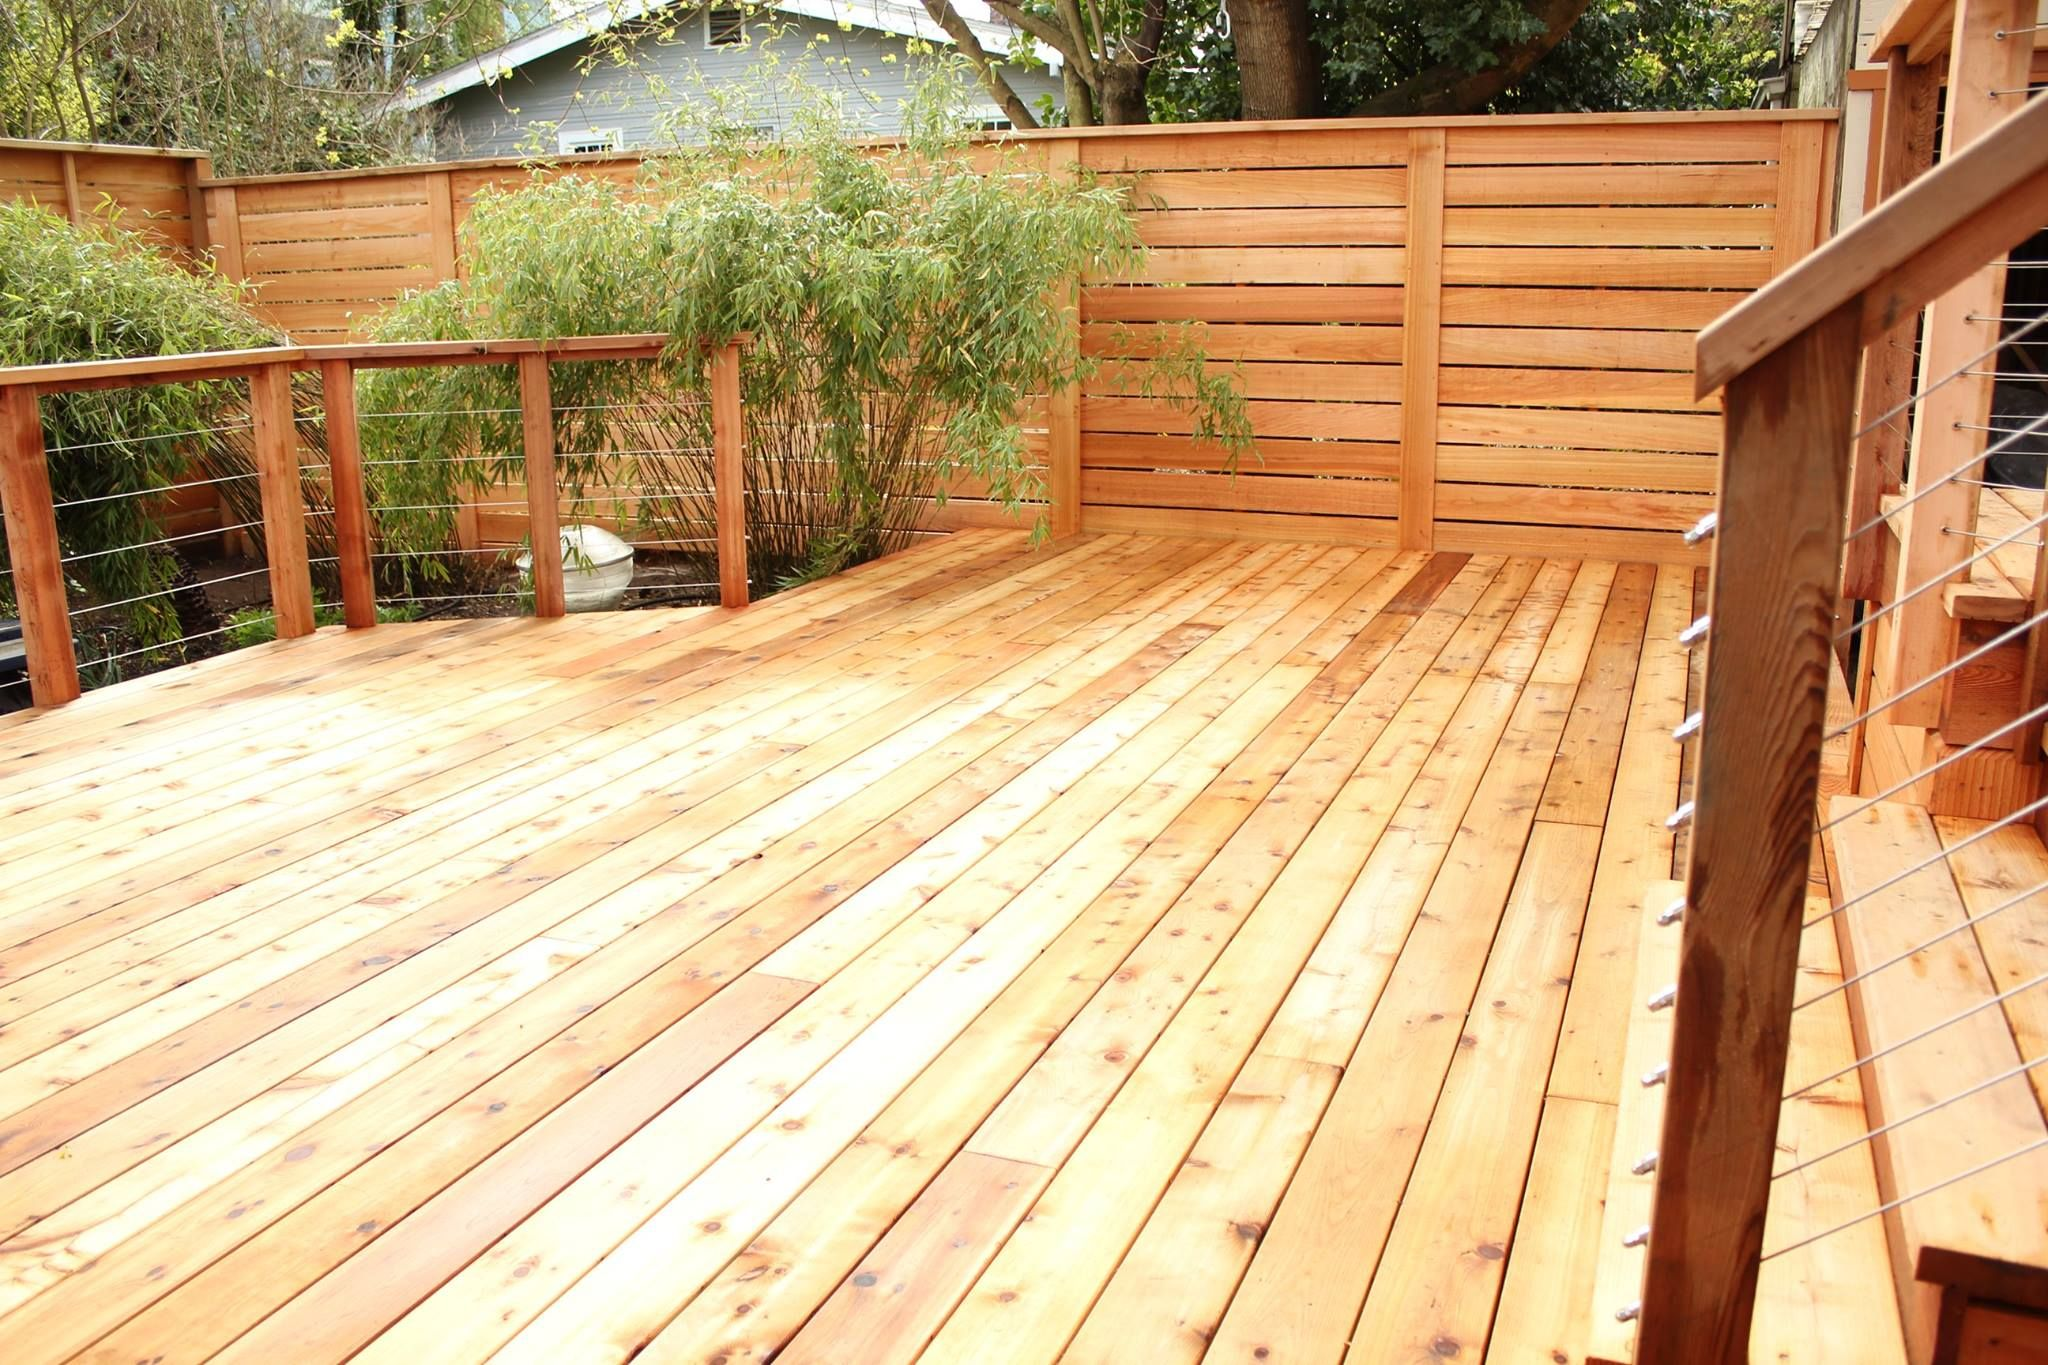 Cedar Deck, Fence, And Cable Railing System By Cascade Fence U0026 Deck In  Vancouver